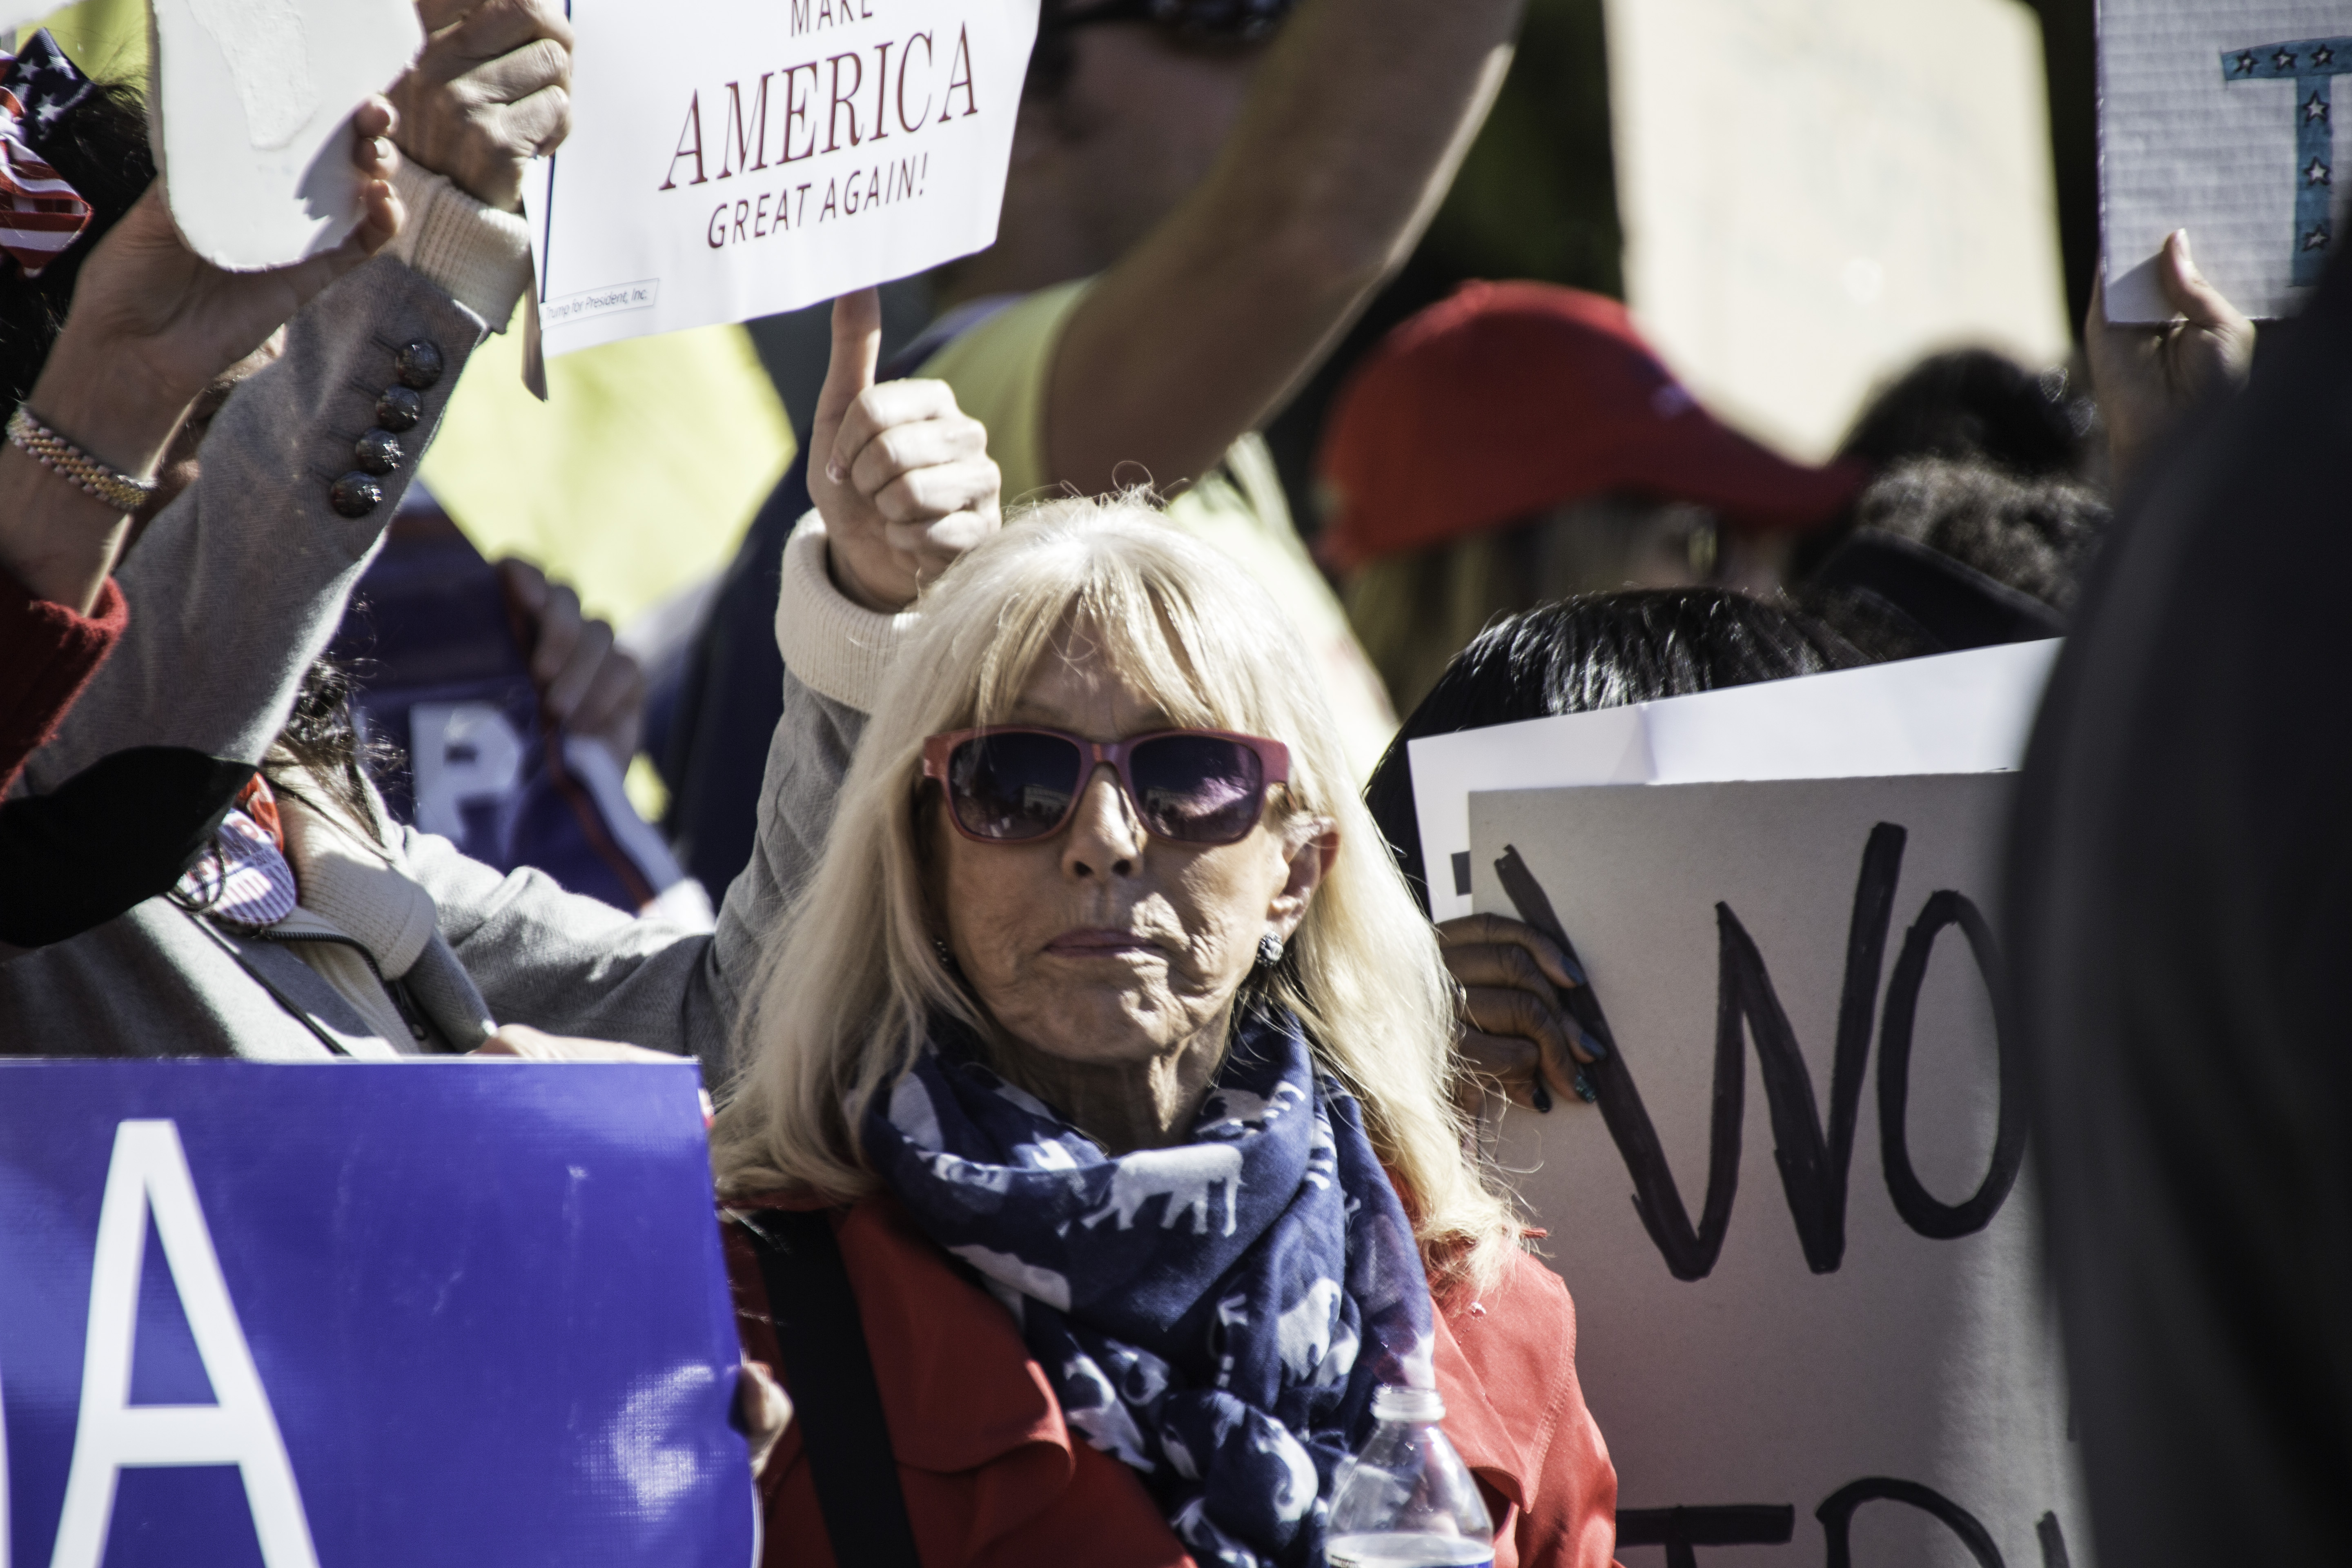 Alice Butler Short who runs the Virginia Women For Trump club was also the co-organizer of the Trump protest rally against the RNC.